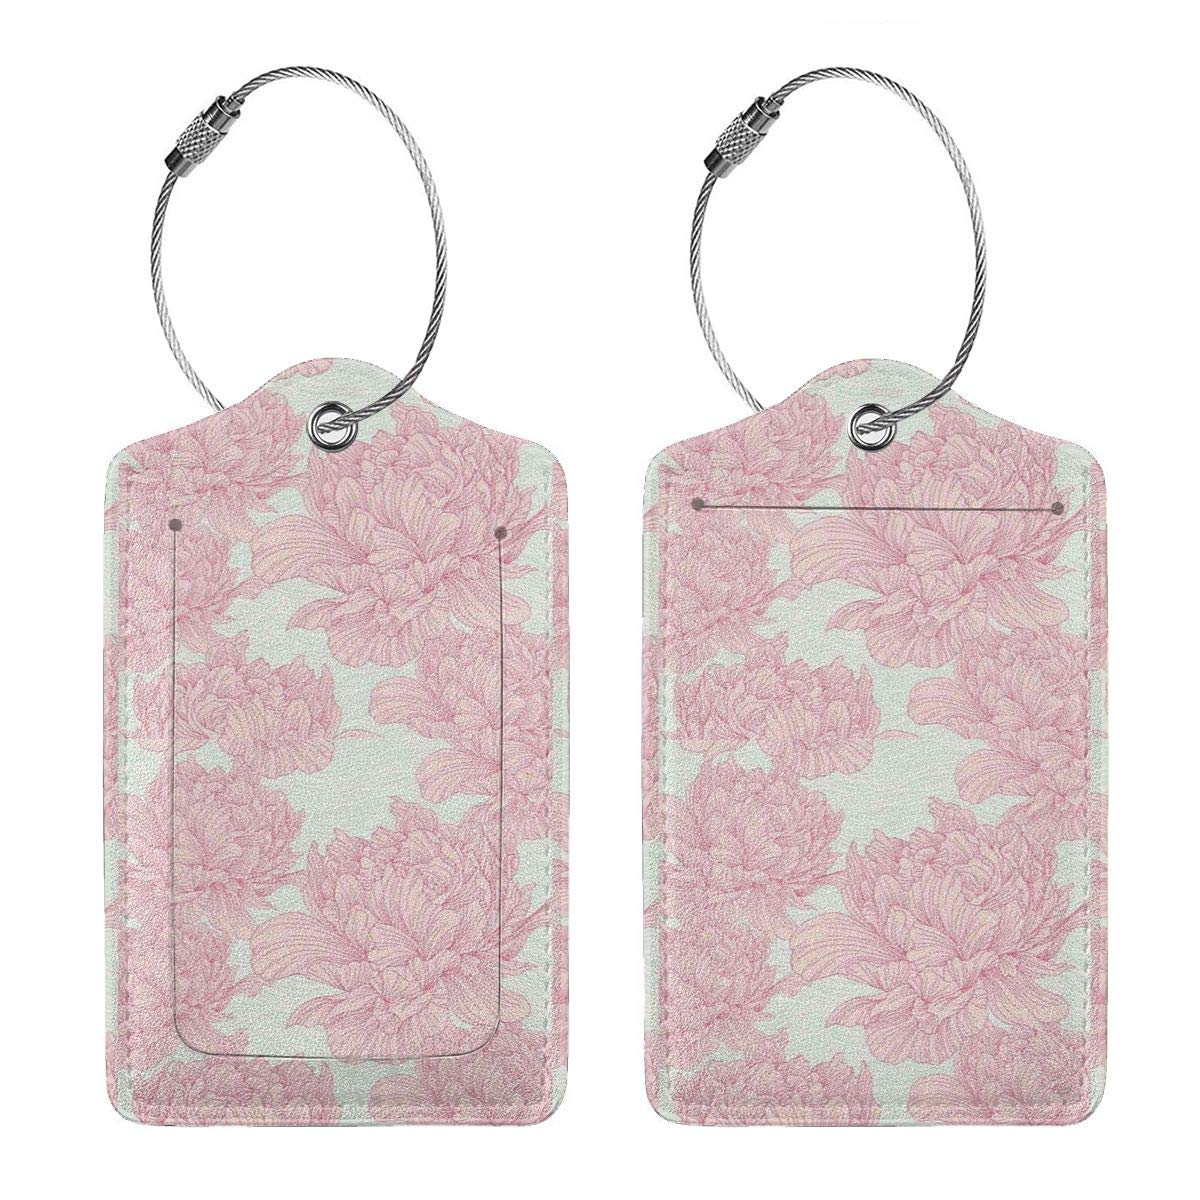 Drawn Peony Flower Leather Luggage Tags Personalized Travel Accessories With Privacy Flap